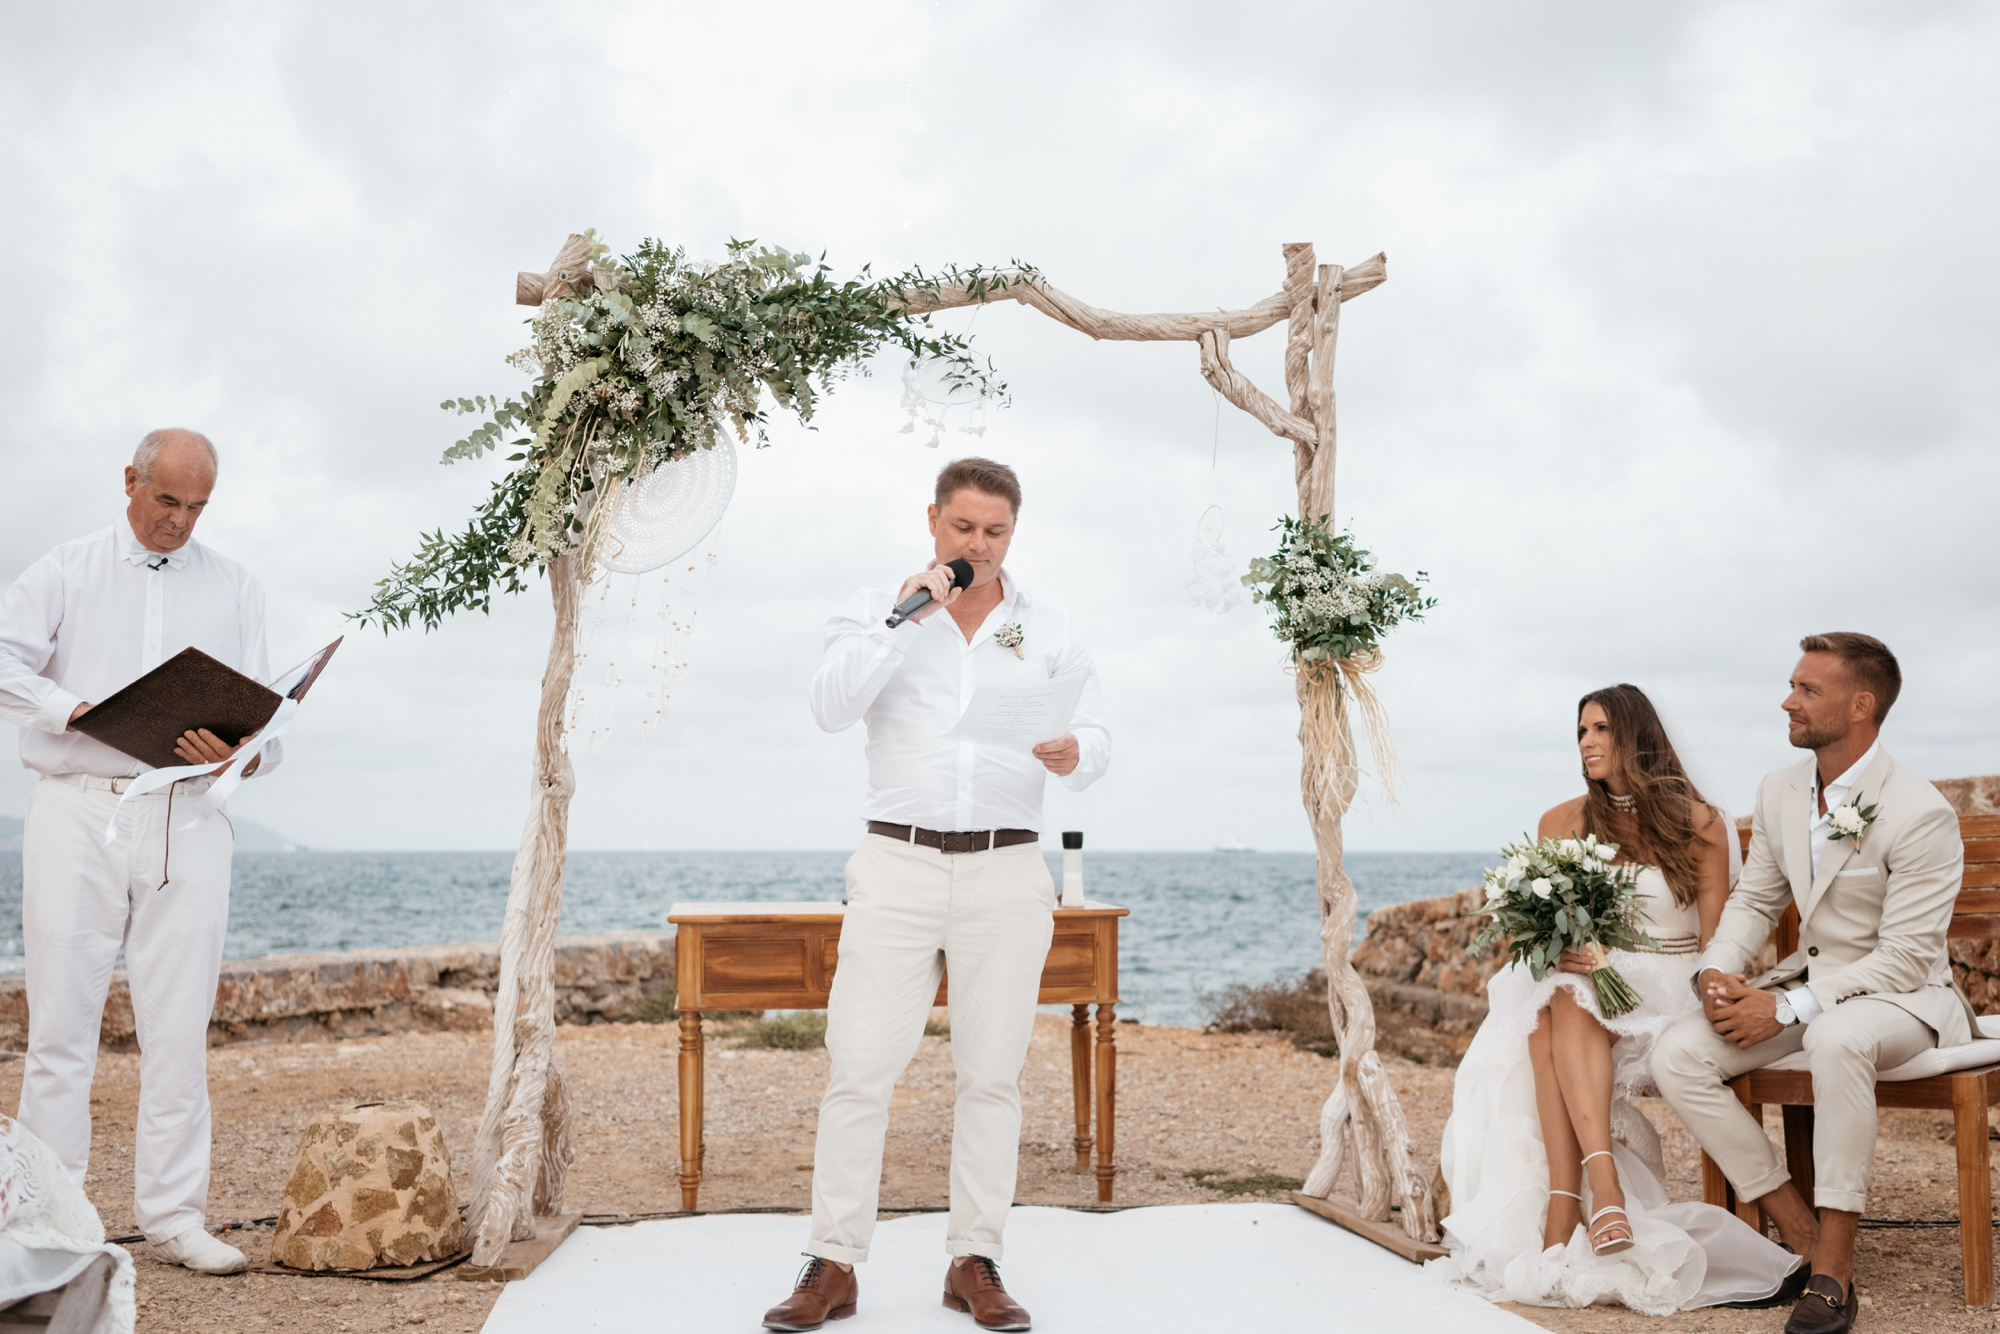 natural wedding photo destination la escollera ibiza 0062 1